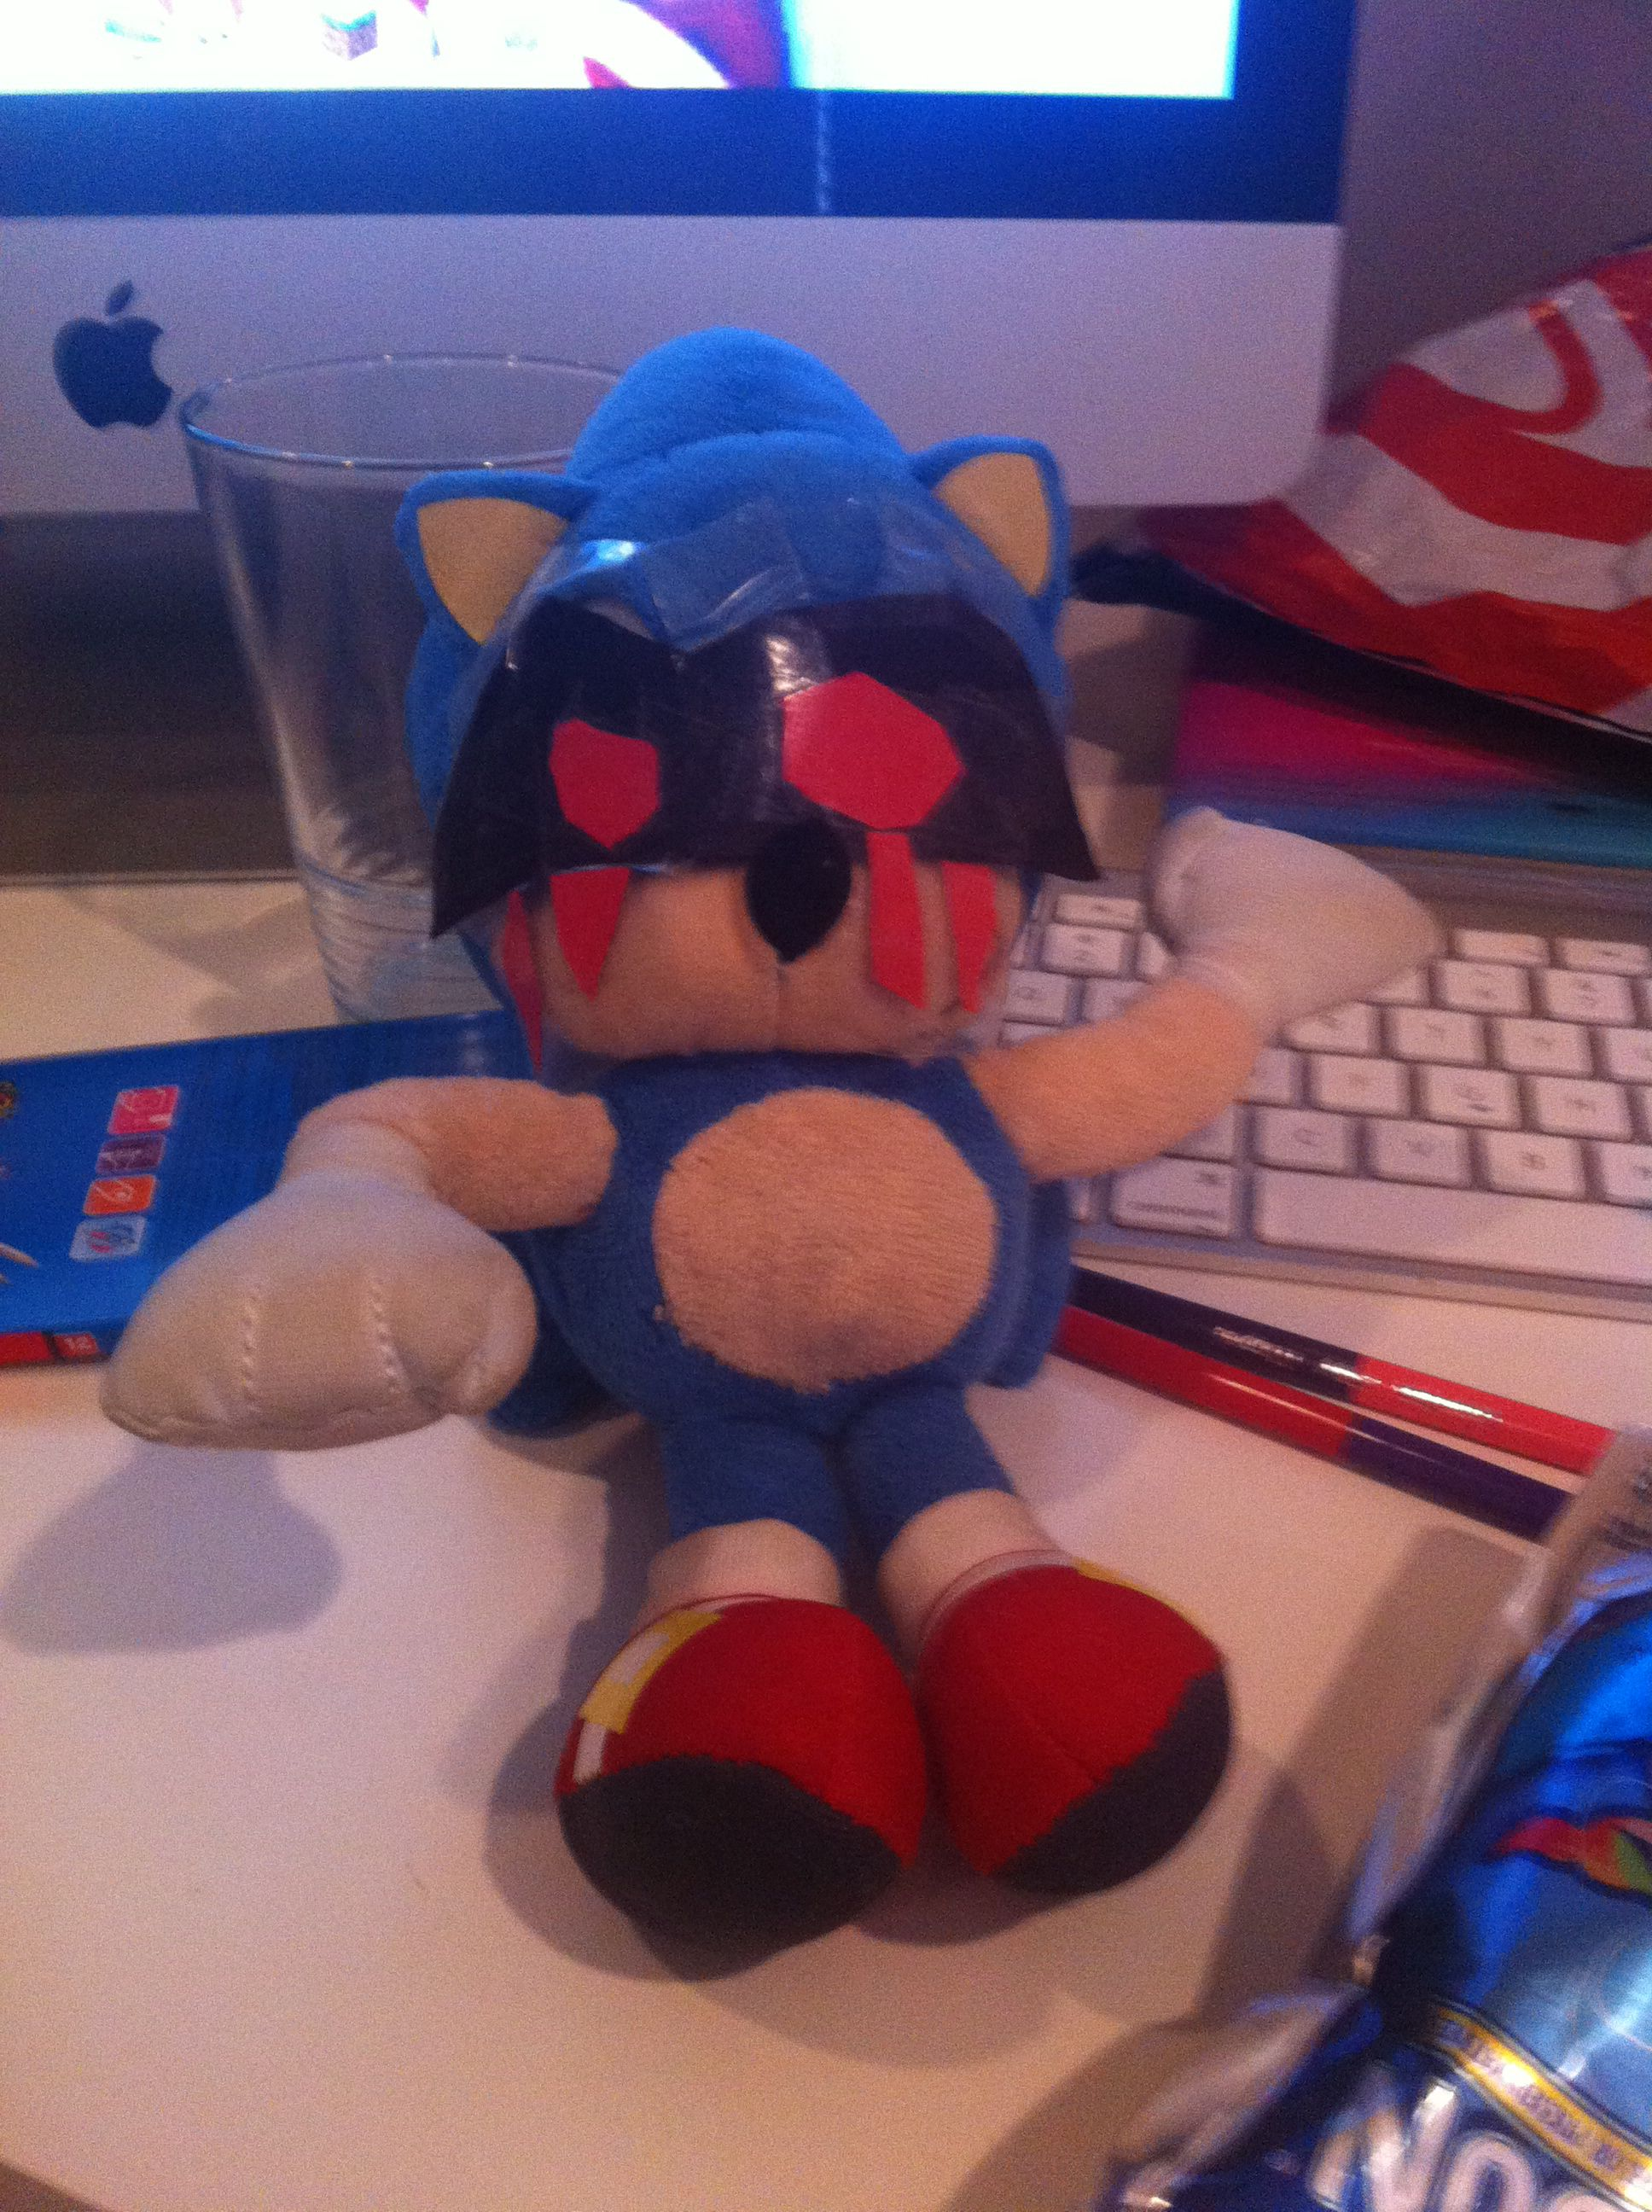 Anybody Who Ve Read The Sonic Exe Crept Pasta Will Get This Sonic Sonic The Hedgehog Cake Pops